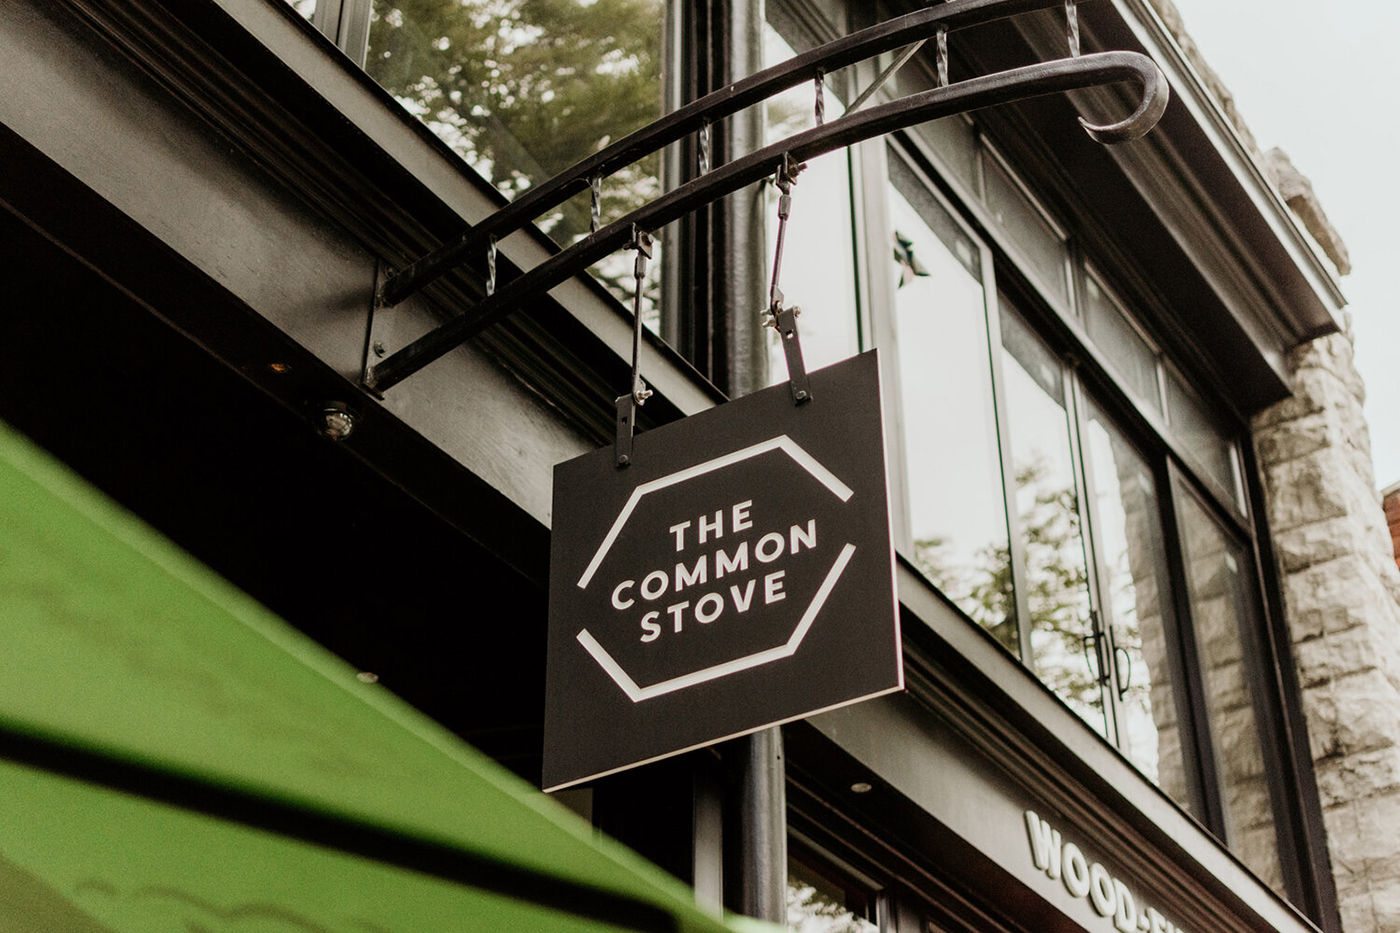 The Common Stove signage